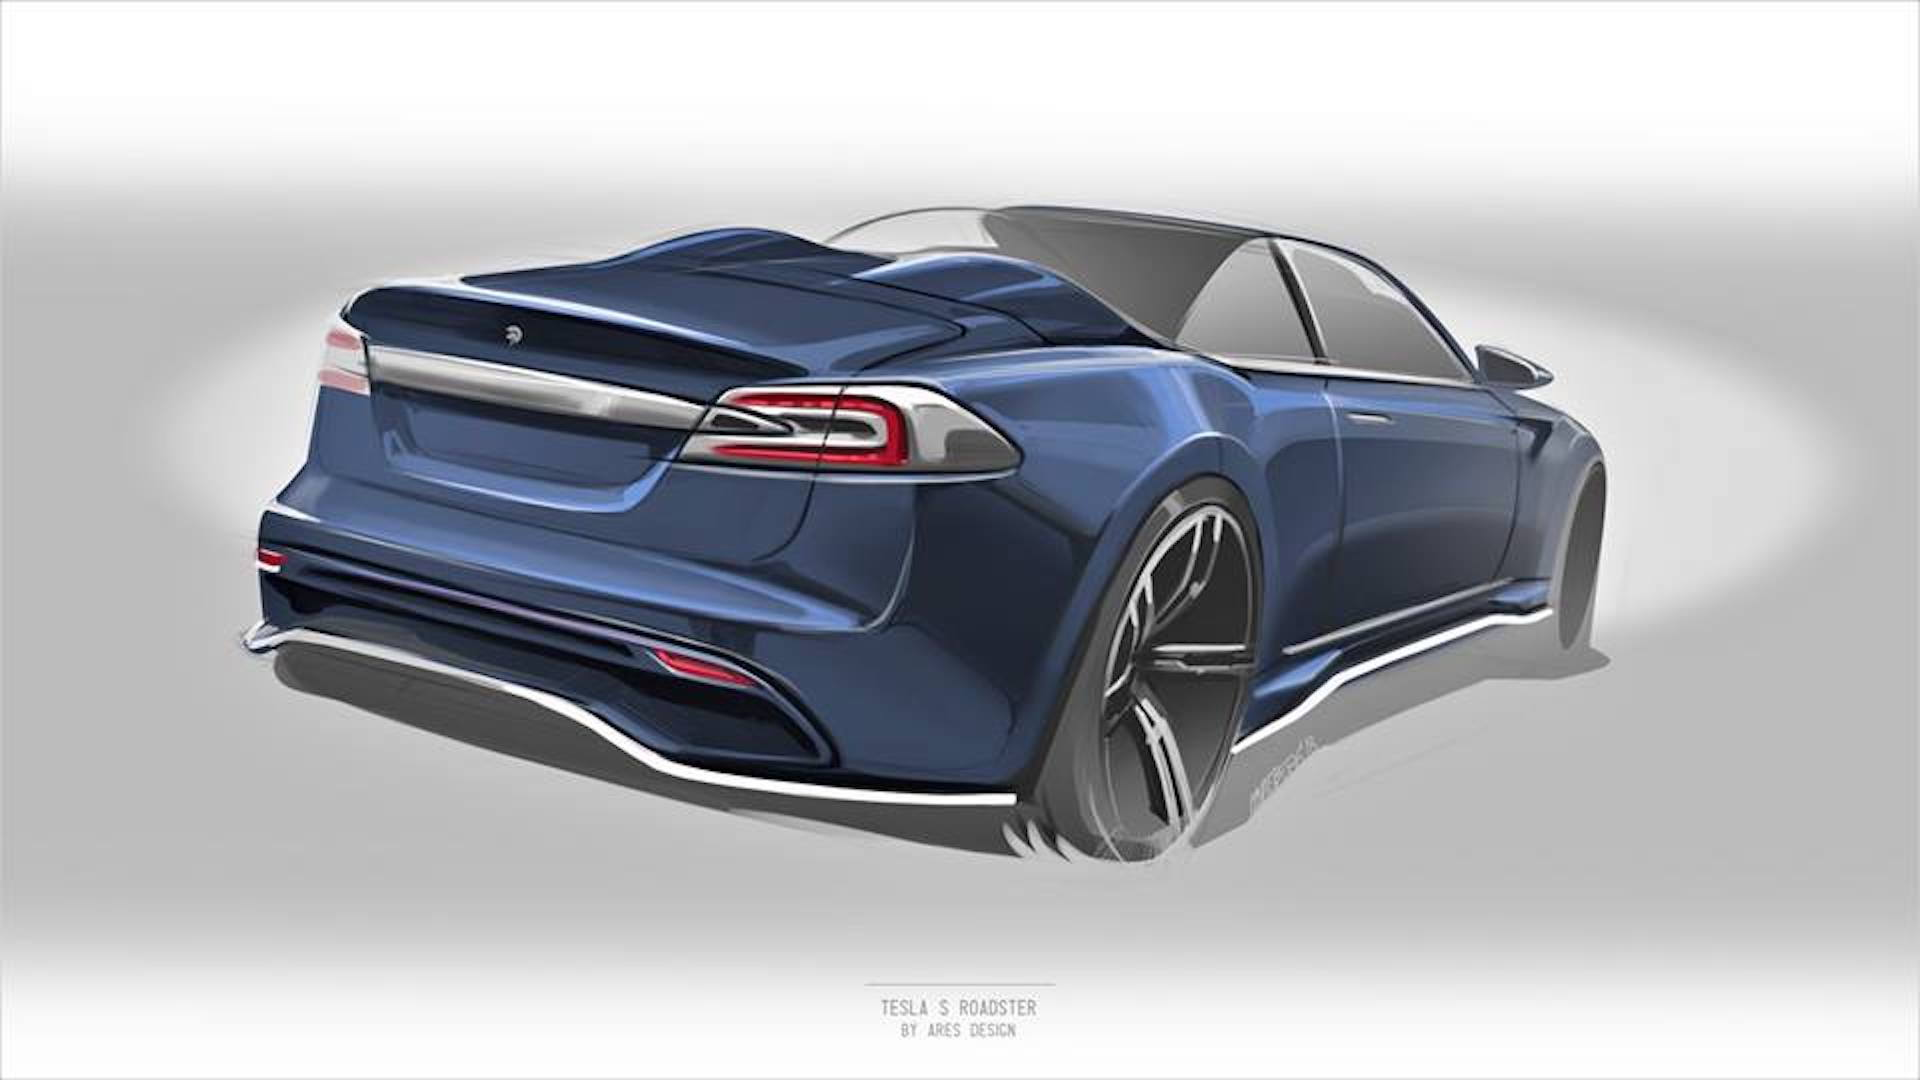 Ares Tesla Model S Roadster teaser sketch